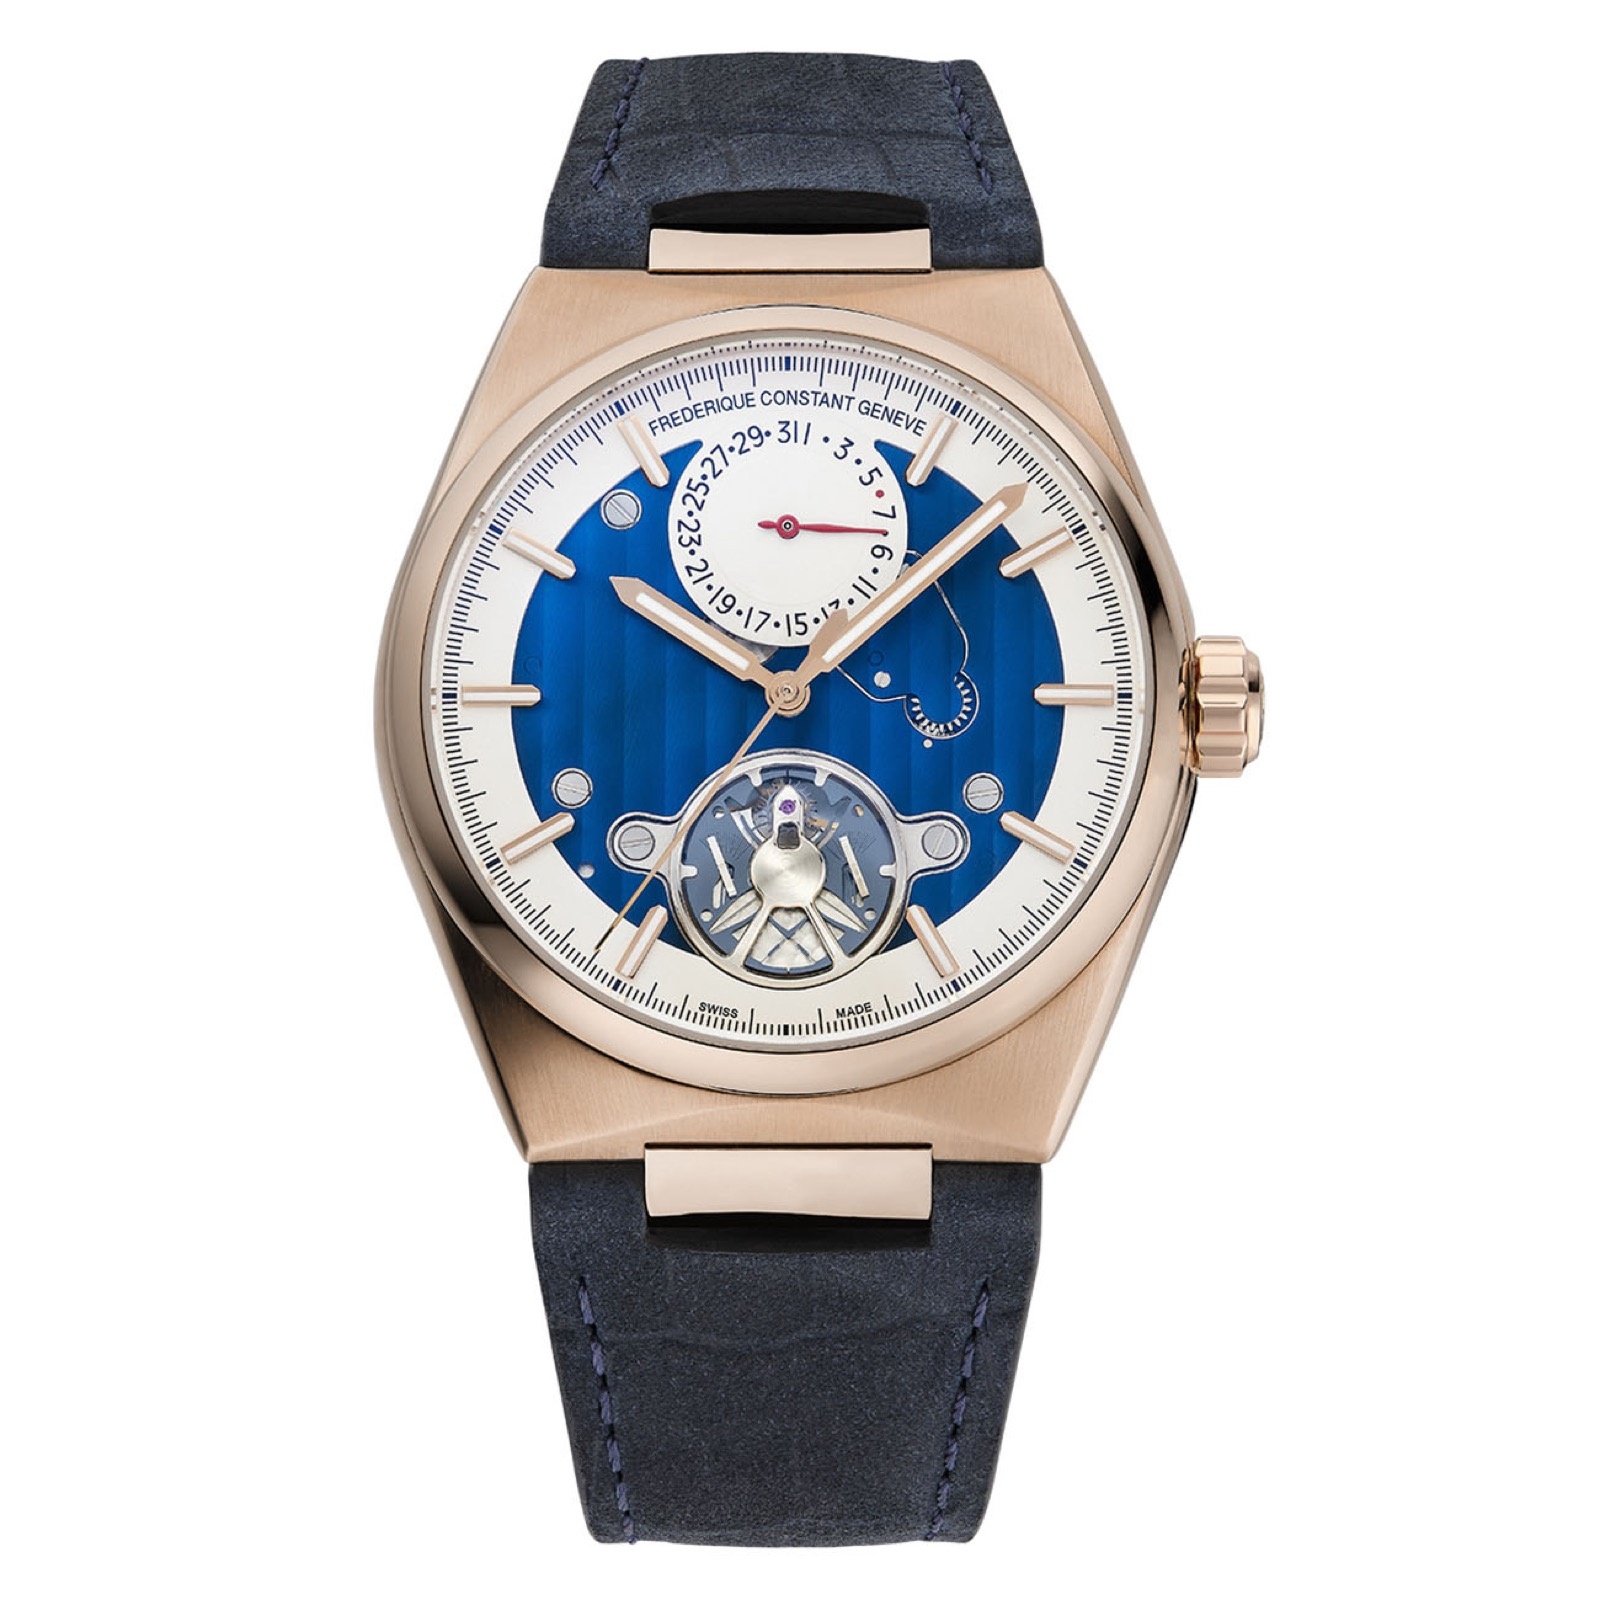 Frederique-Constant-only-watch-2021